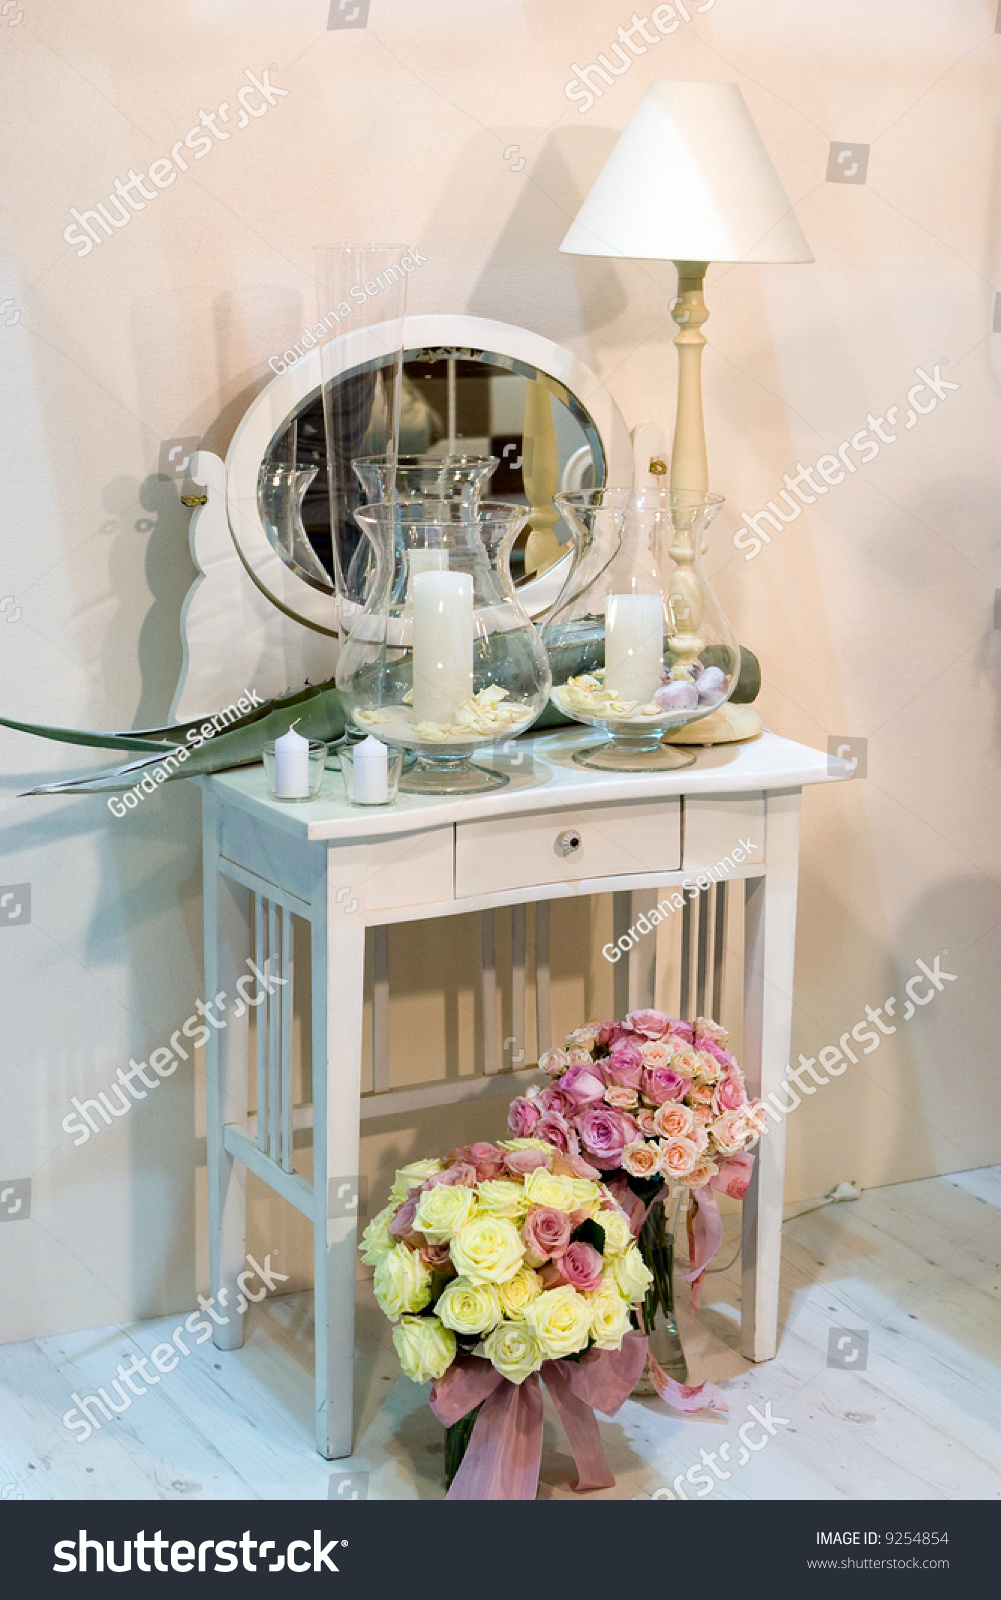 Shabby Chic Home Design Stock Photo 9254854 Shutterstock